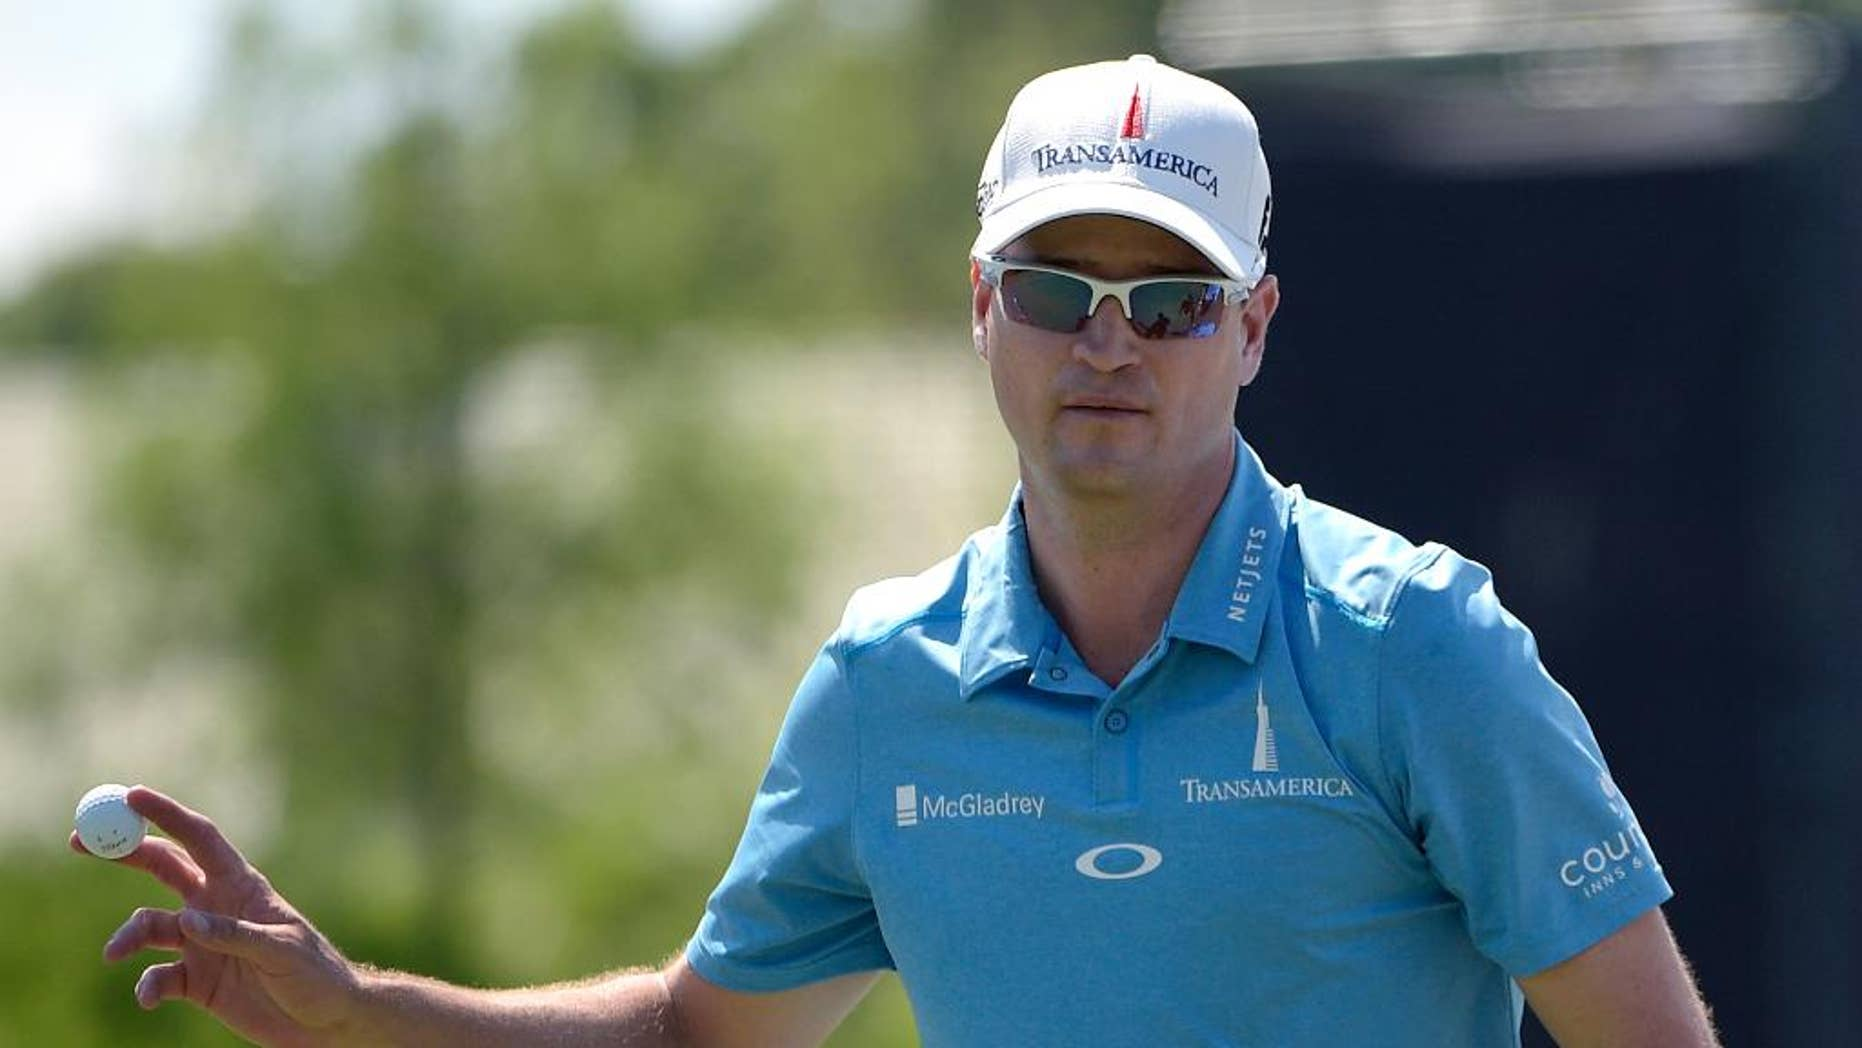 Zach Johnson acknowledges the crowd after making a putt for par on the 17th green during the third round of the Arnold Palmer Invitational golf tournament in Orlando, Fla., Saturday, March 21, 2015.(AP Photo/Phelan M. Ebenhack)